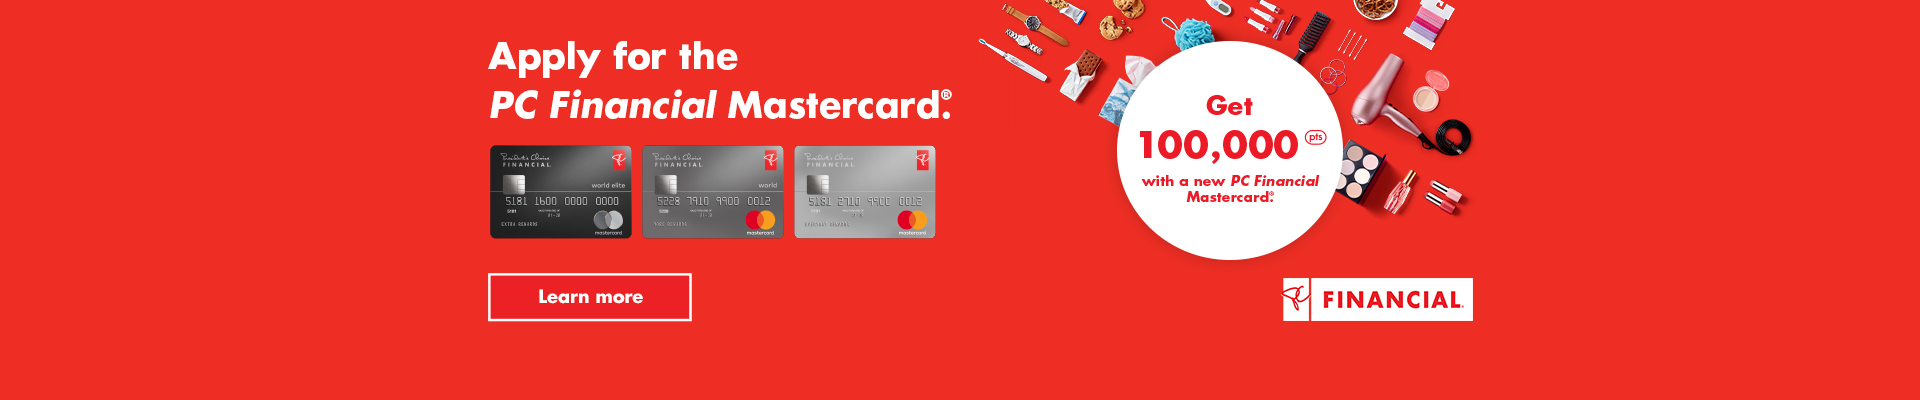 Apply for a PC Financial Mastercard® and get 100,000 bonus PC Optimum points on your first purchase. Learn more.